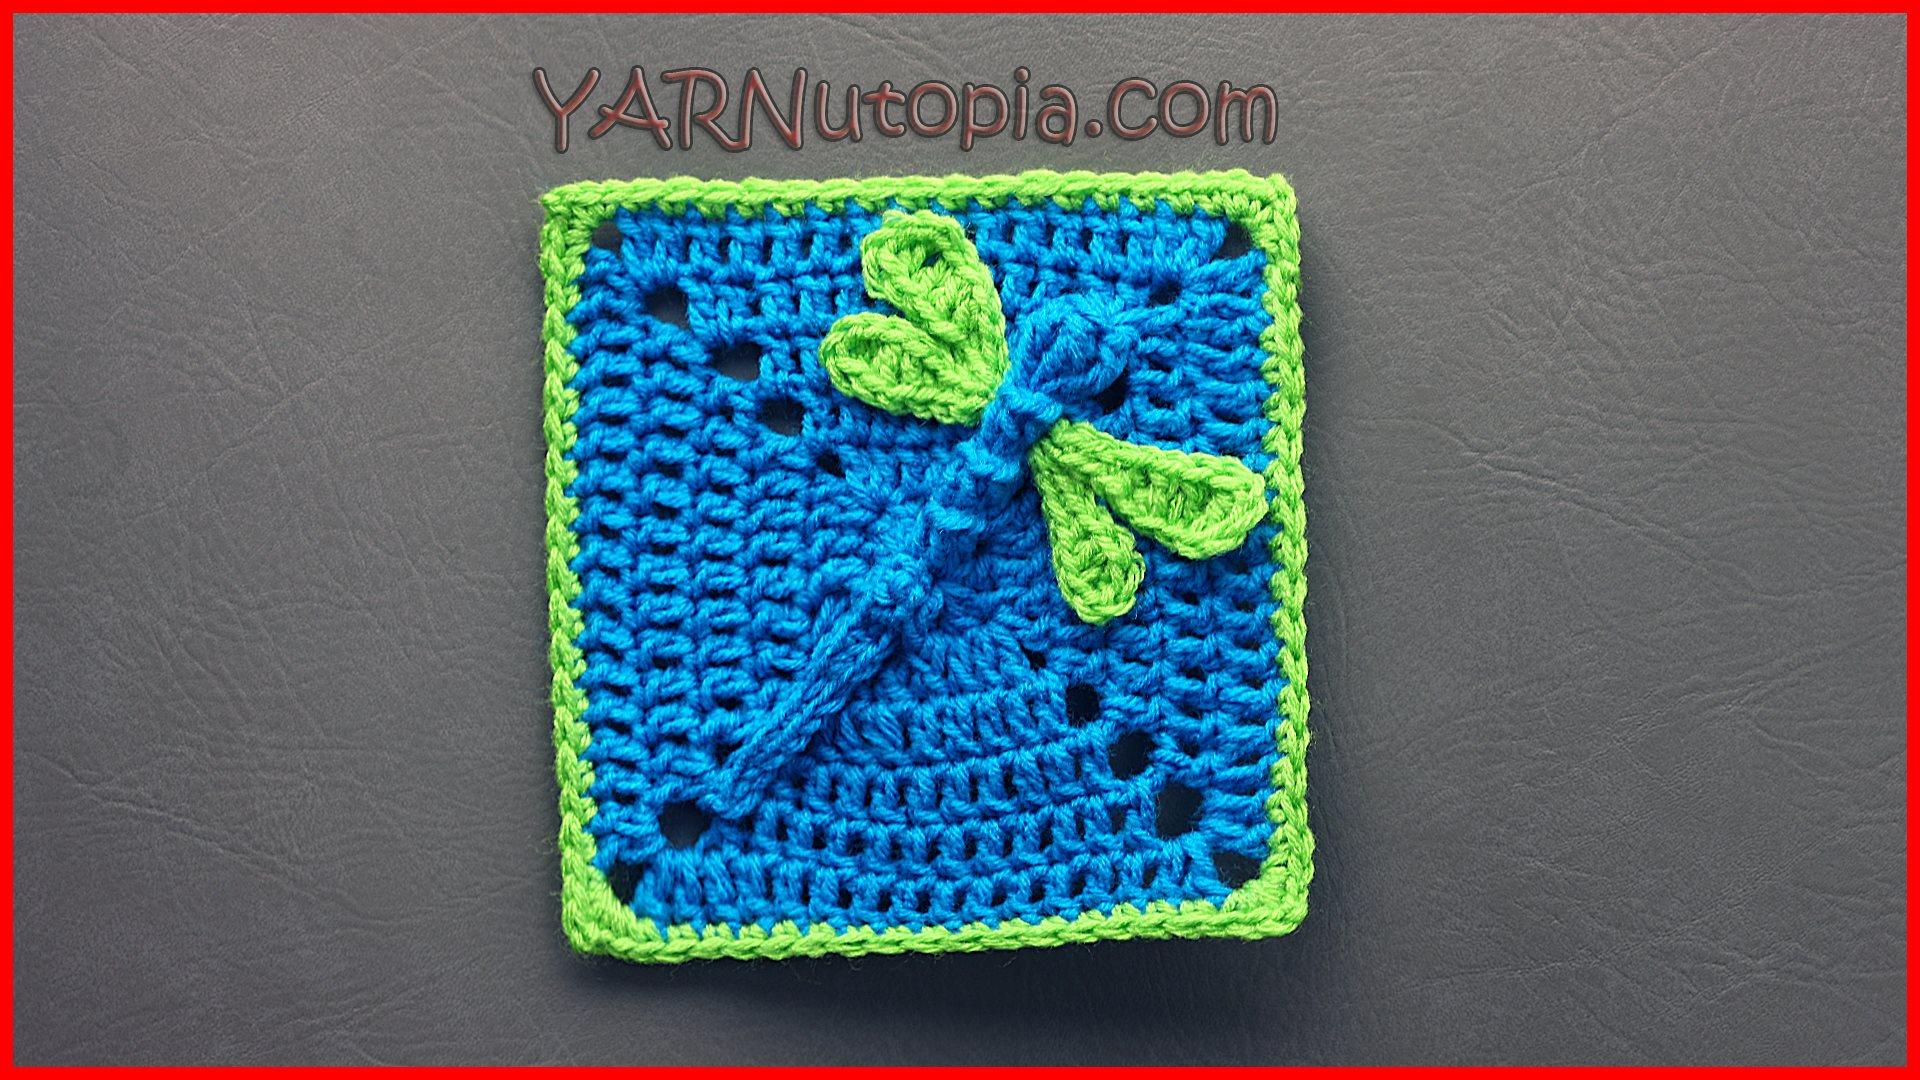 Dragonfly Crochet Pattern Awesome Decoration